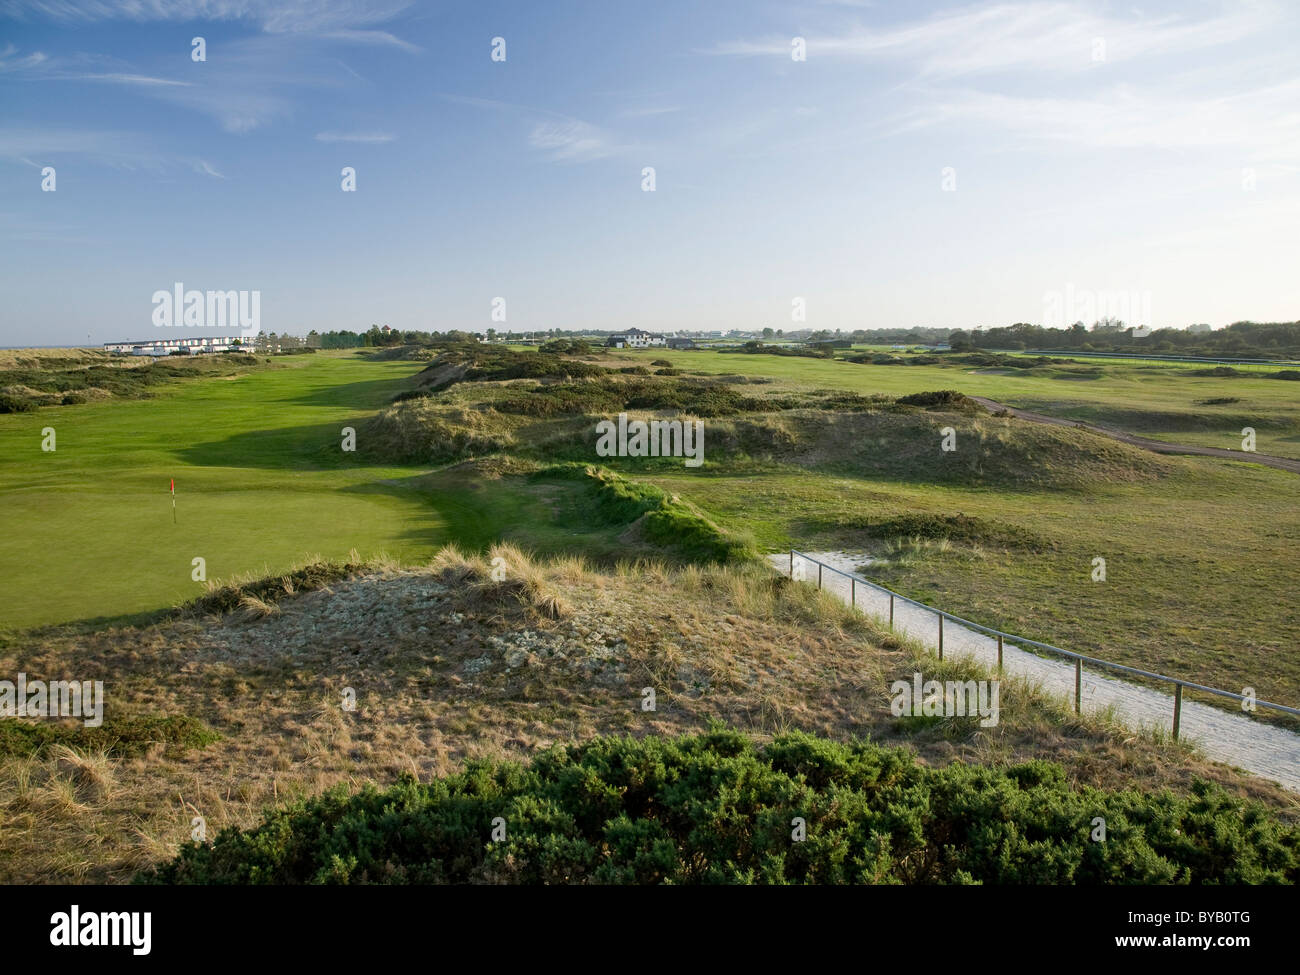 Caister golf course (south view) - Stock Image